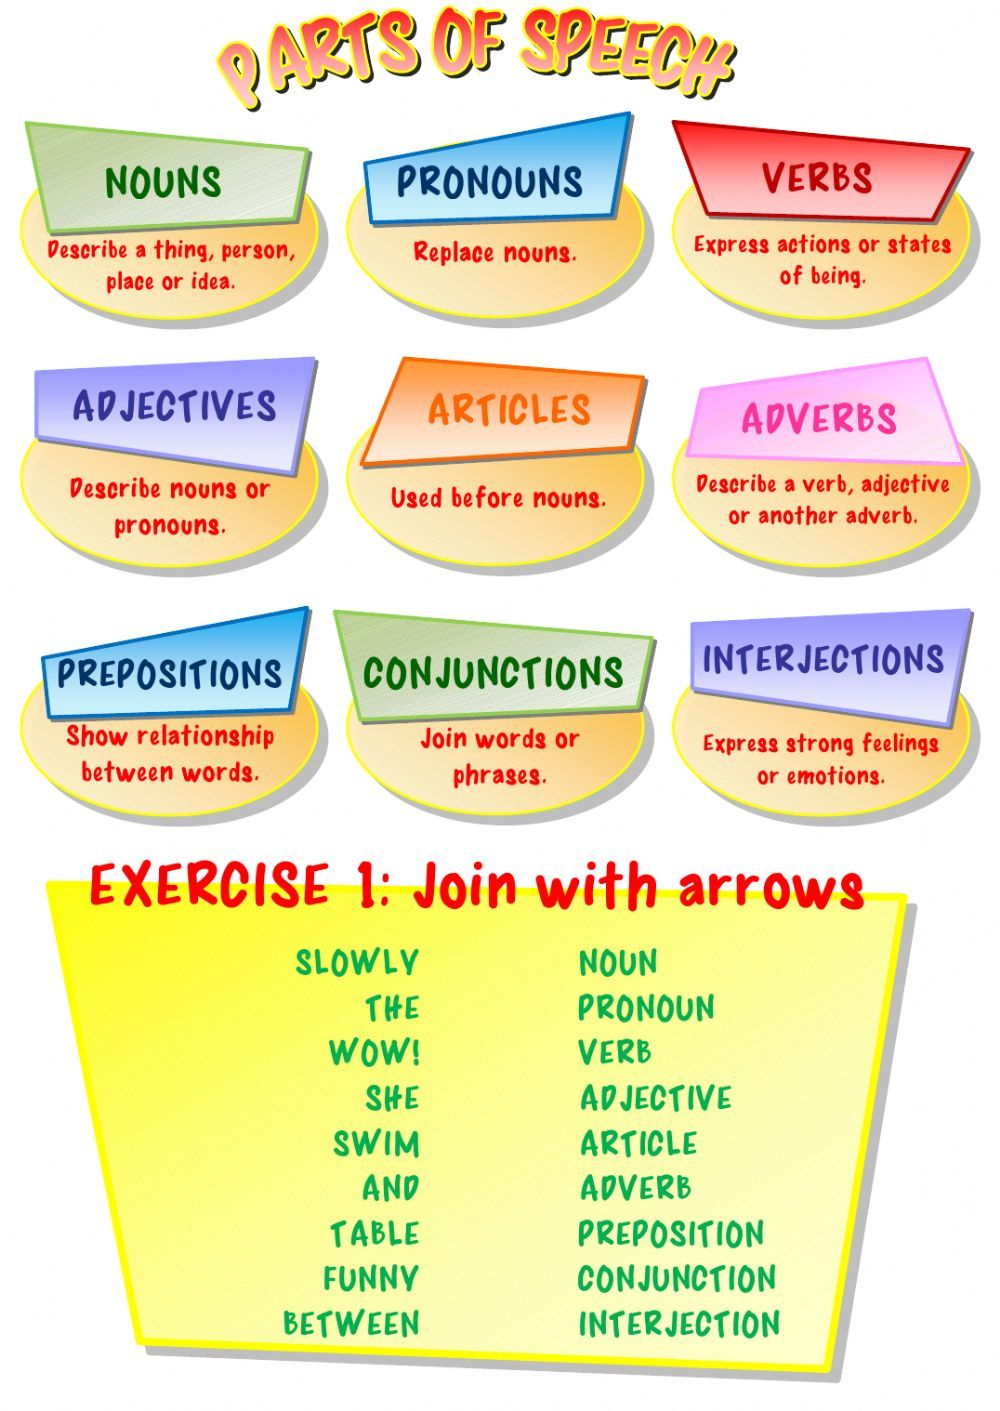 Parts Of Speech Interactive And Downloadable Worksheet You Can Do The Exercises Online Or Downl Parts Of Speech Part Of Speech Noun Parts Of Speech Worksheets